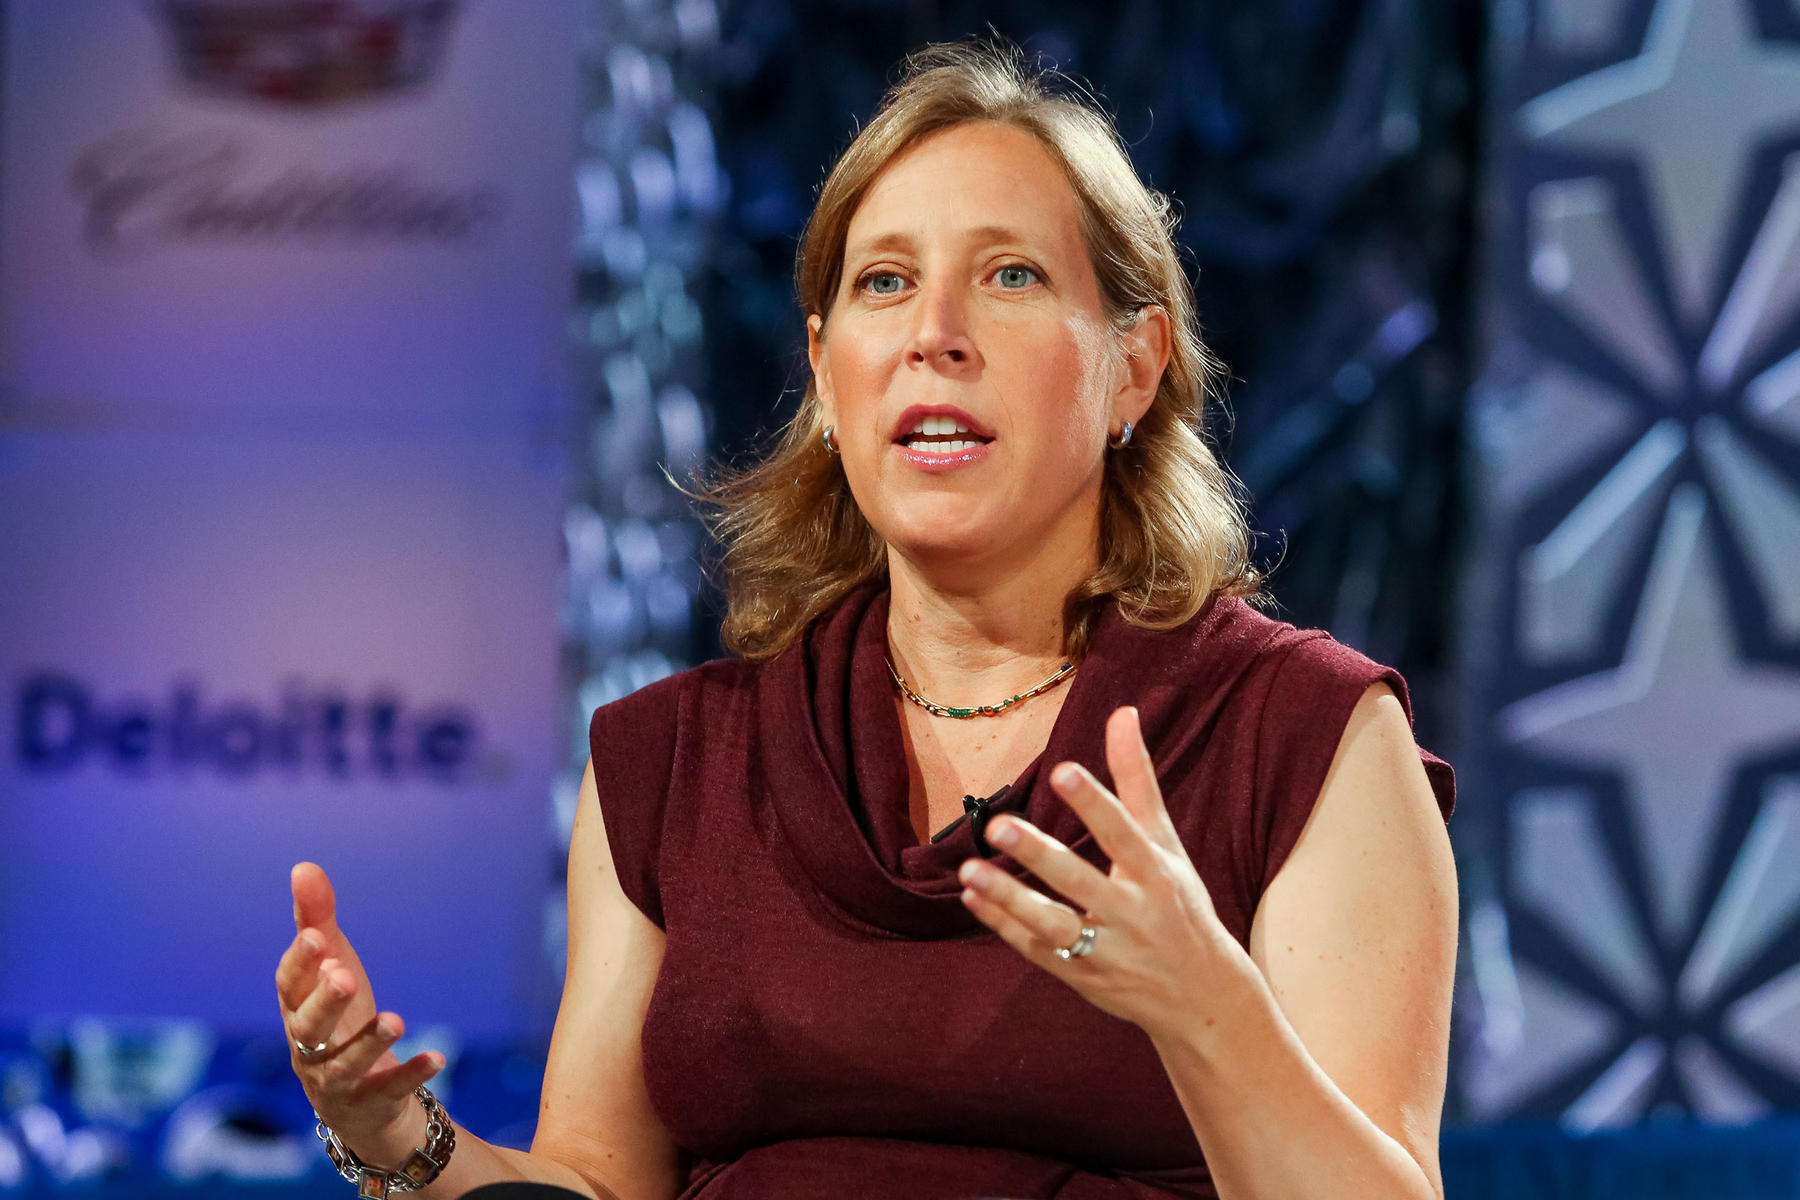 CEO of YouTube, Susan Wojcicki